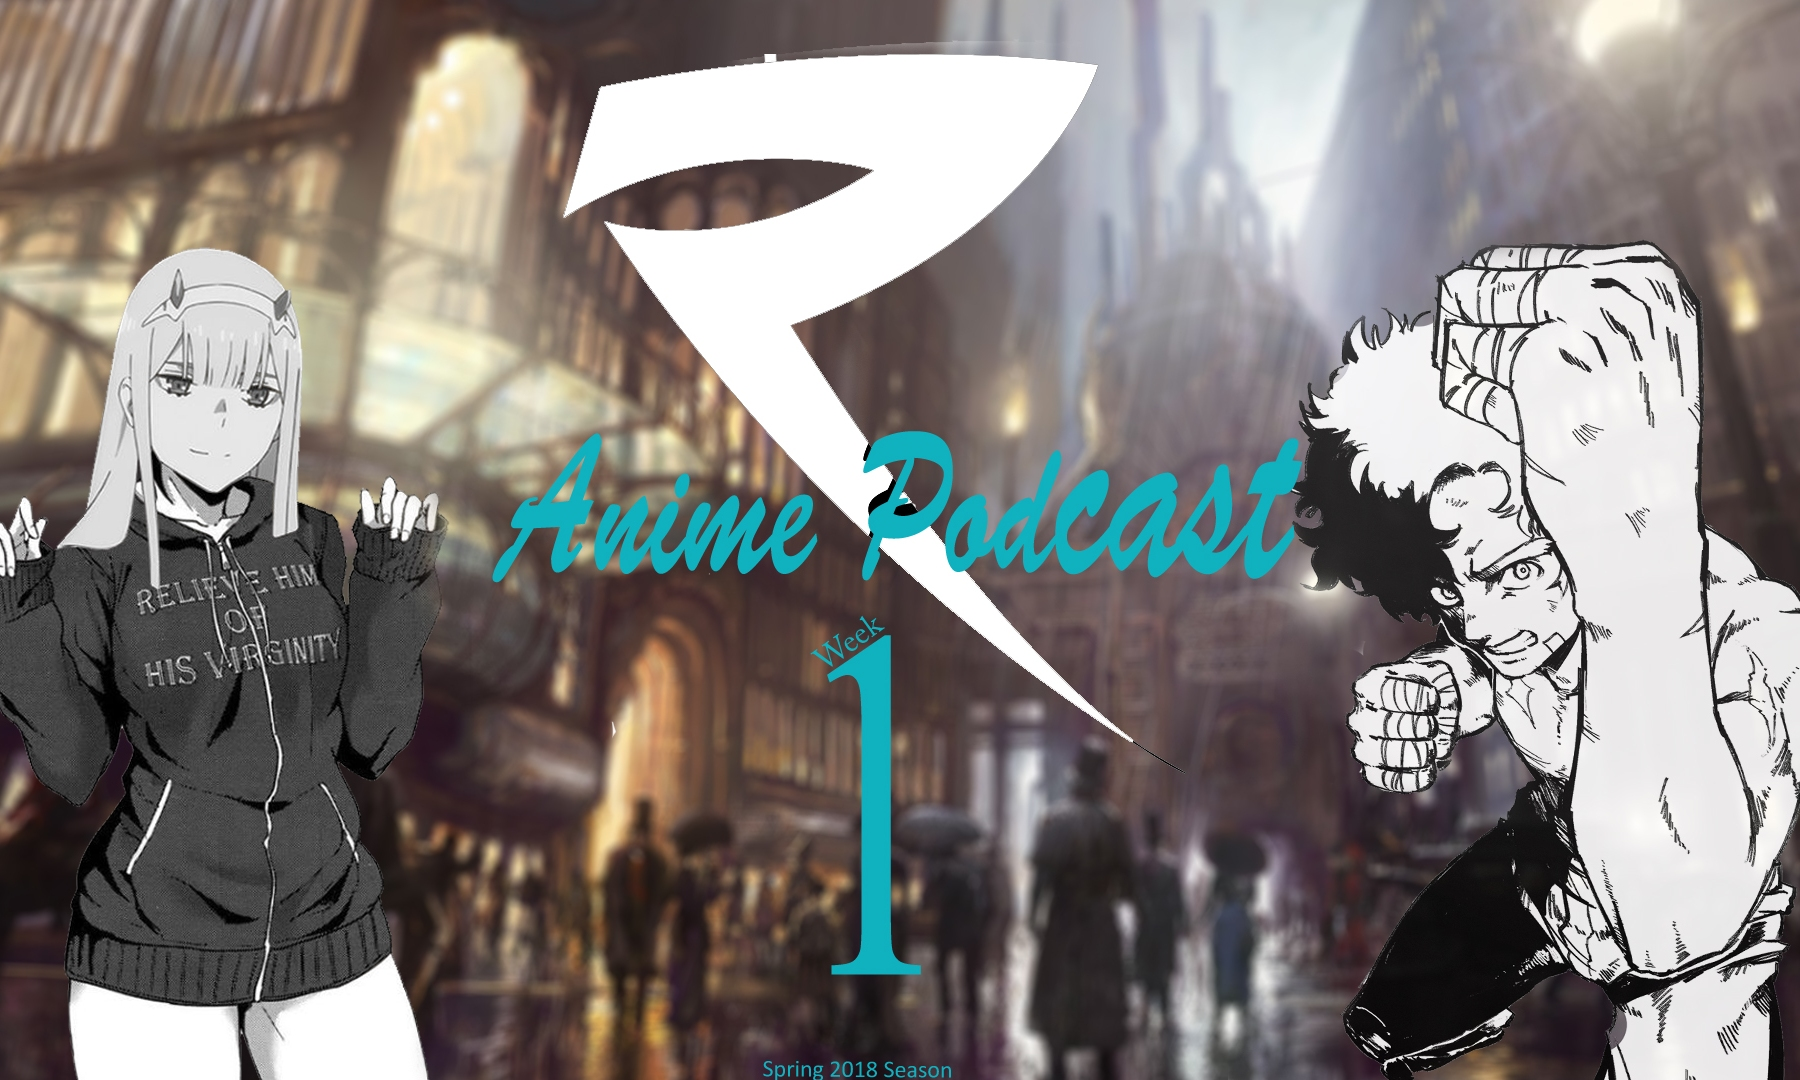 Join us for the first episode of the spring 2018 anime season this week we talk about how megalo box set the bar high hiro and zero twos interesting past